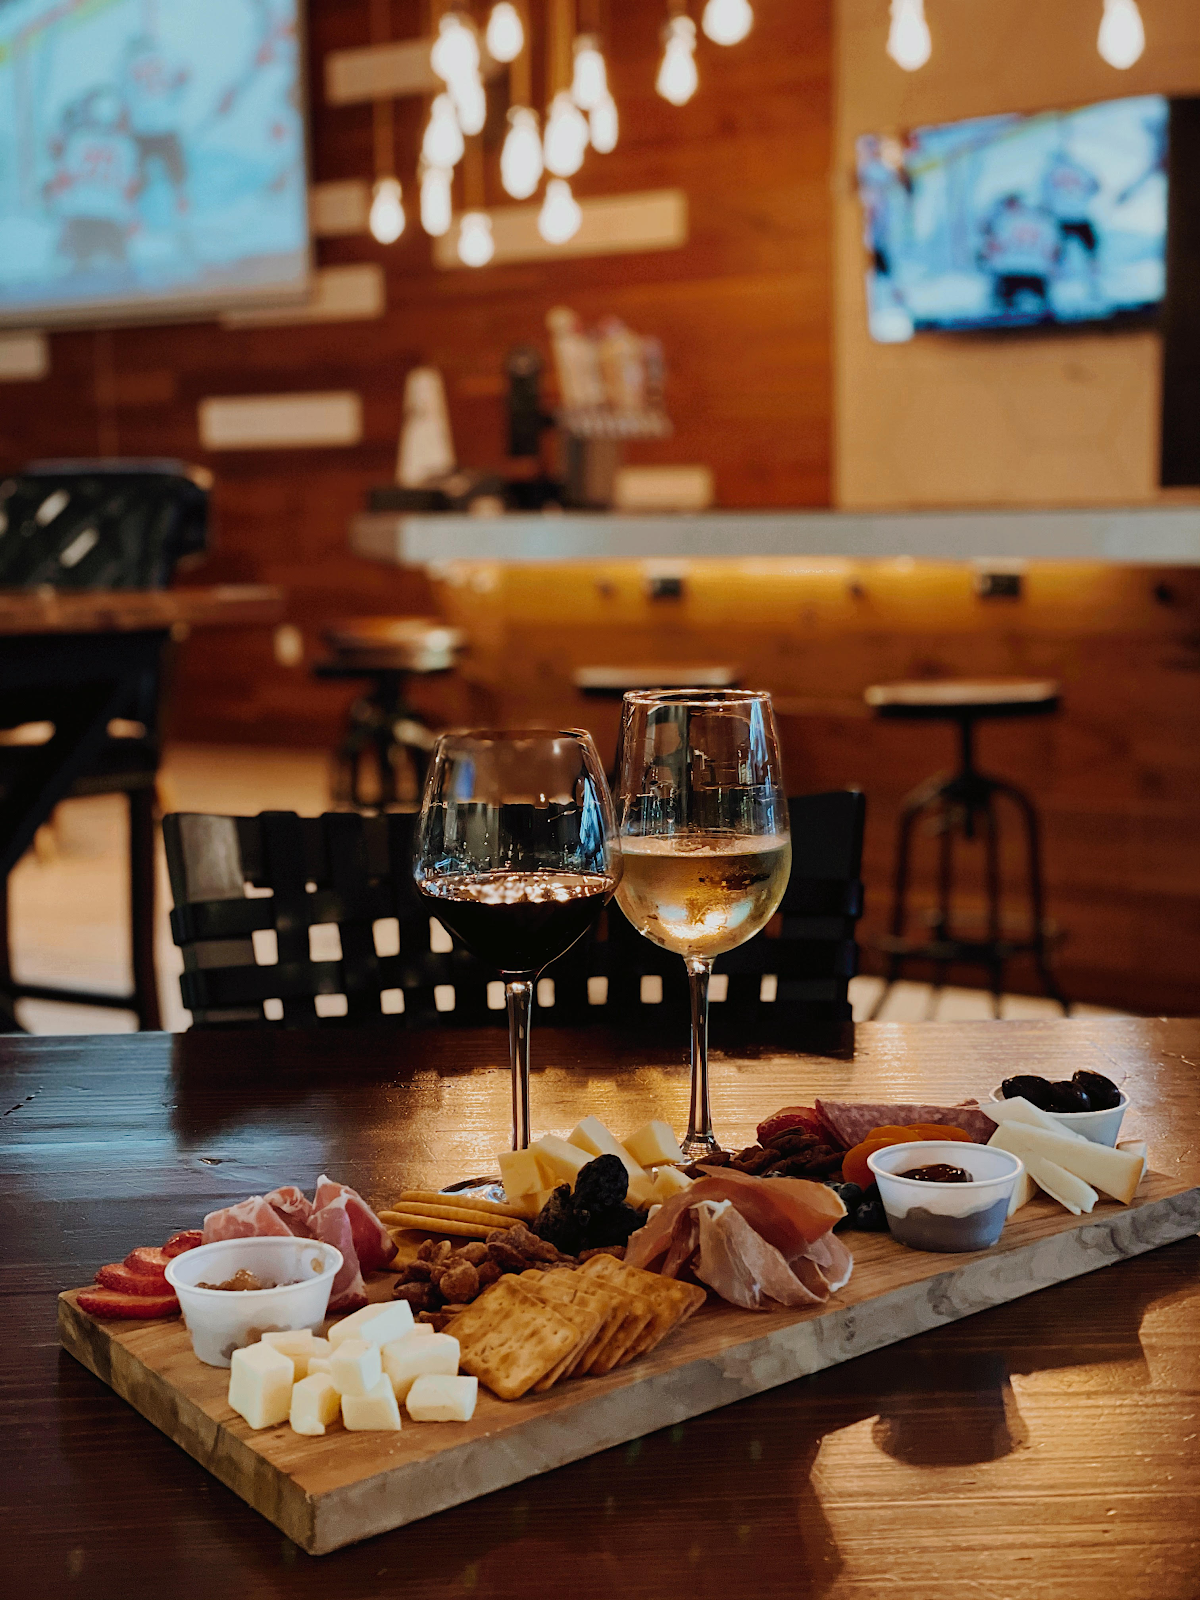 Charcuterie board with glasses at wine at Nosh & Bottle in Irving, TX